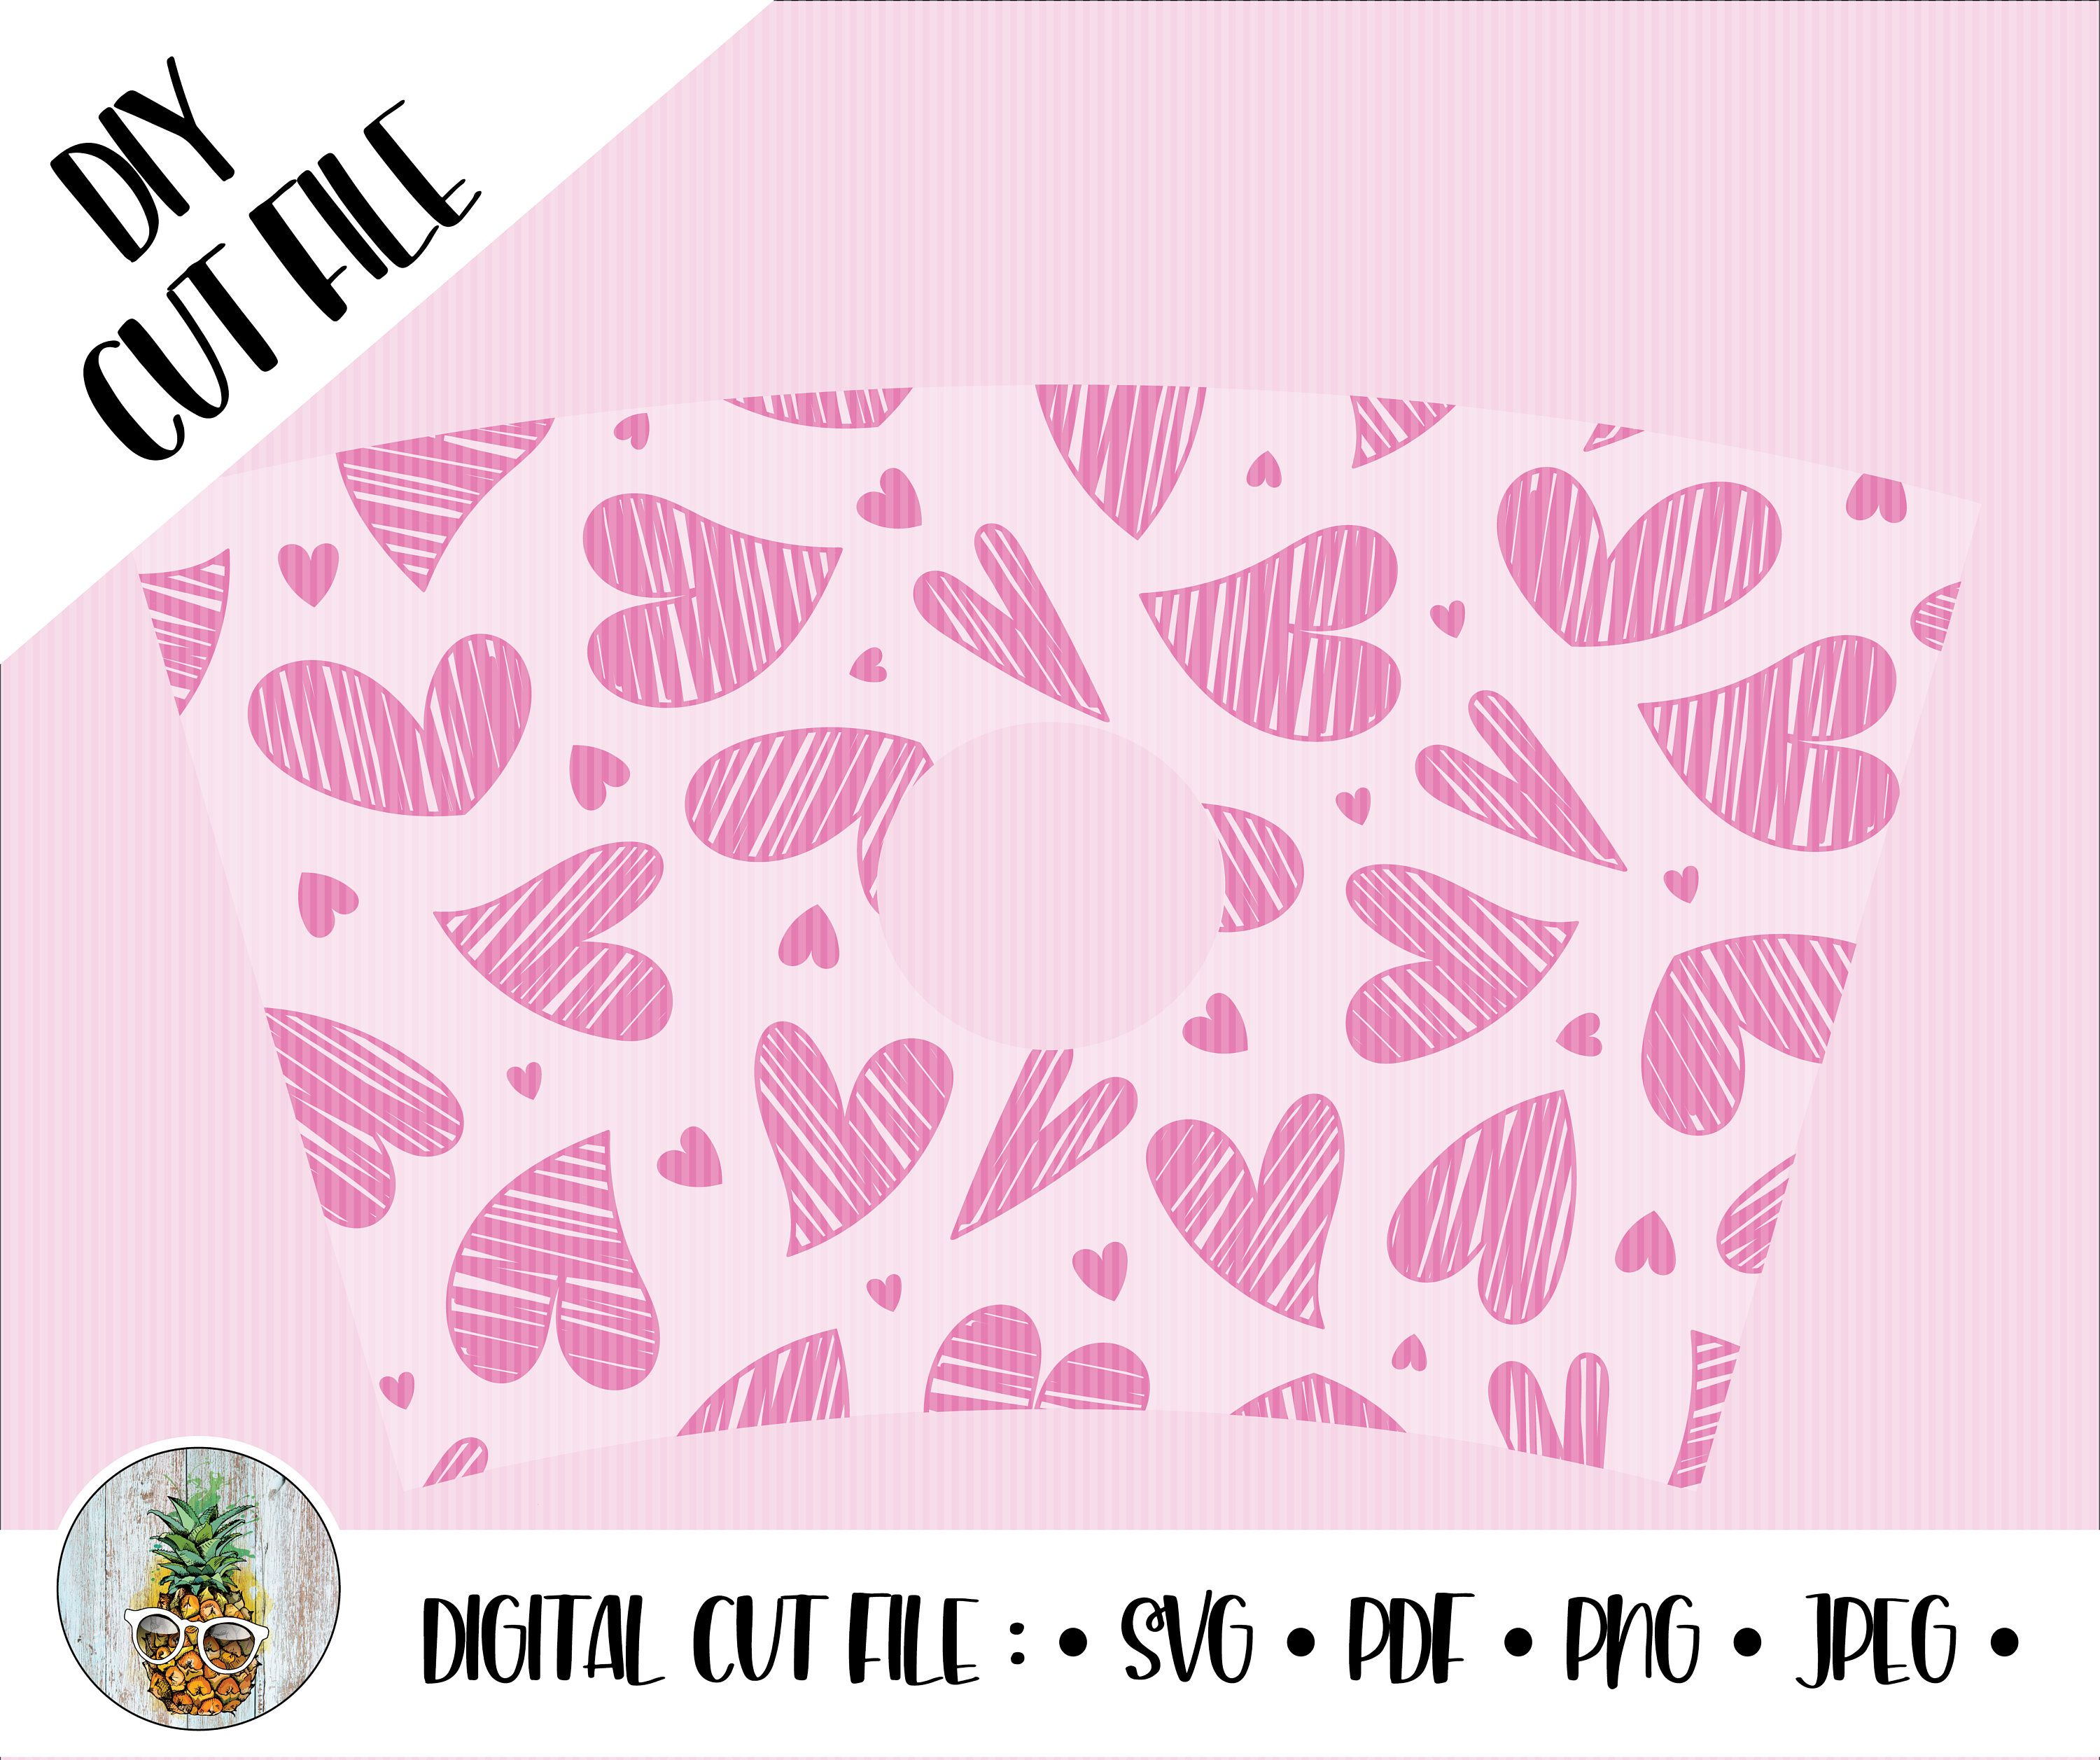 Doodled Hearts Starbucks Cup Wrap 24 oz. Cold Drink Cup